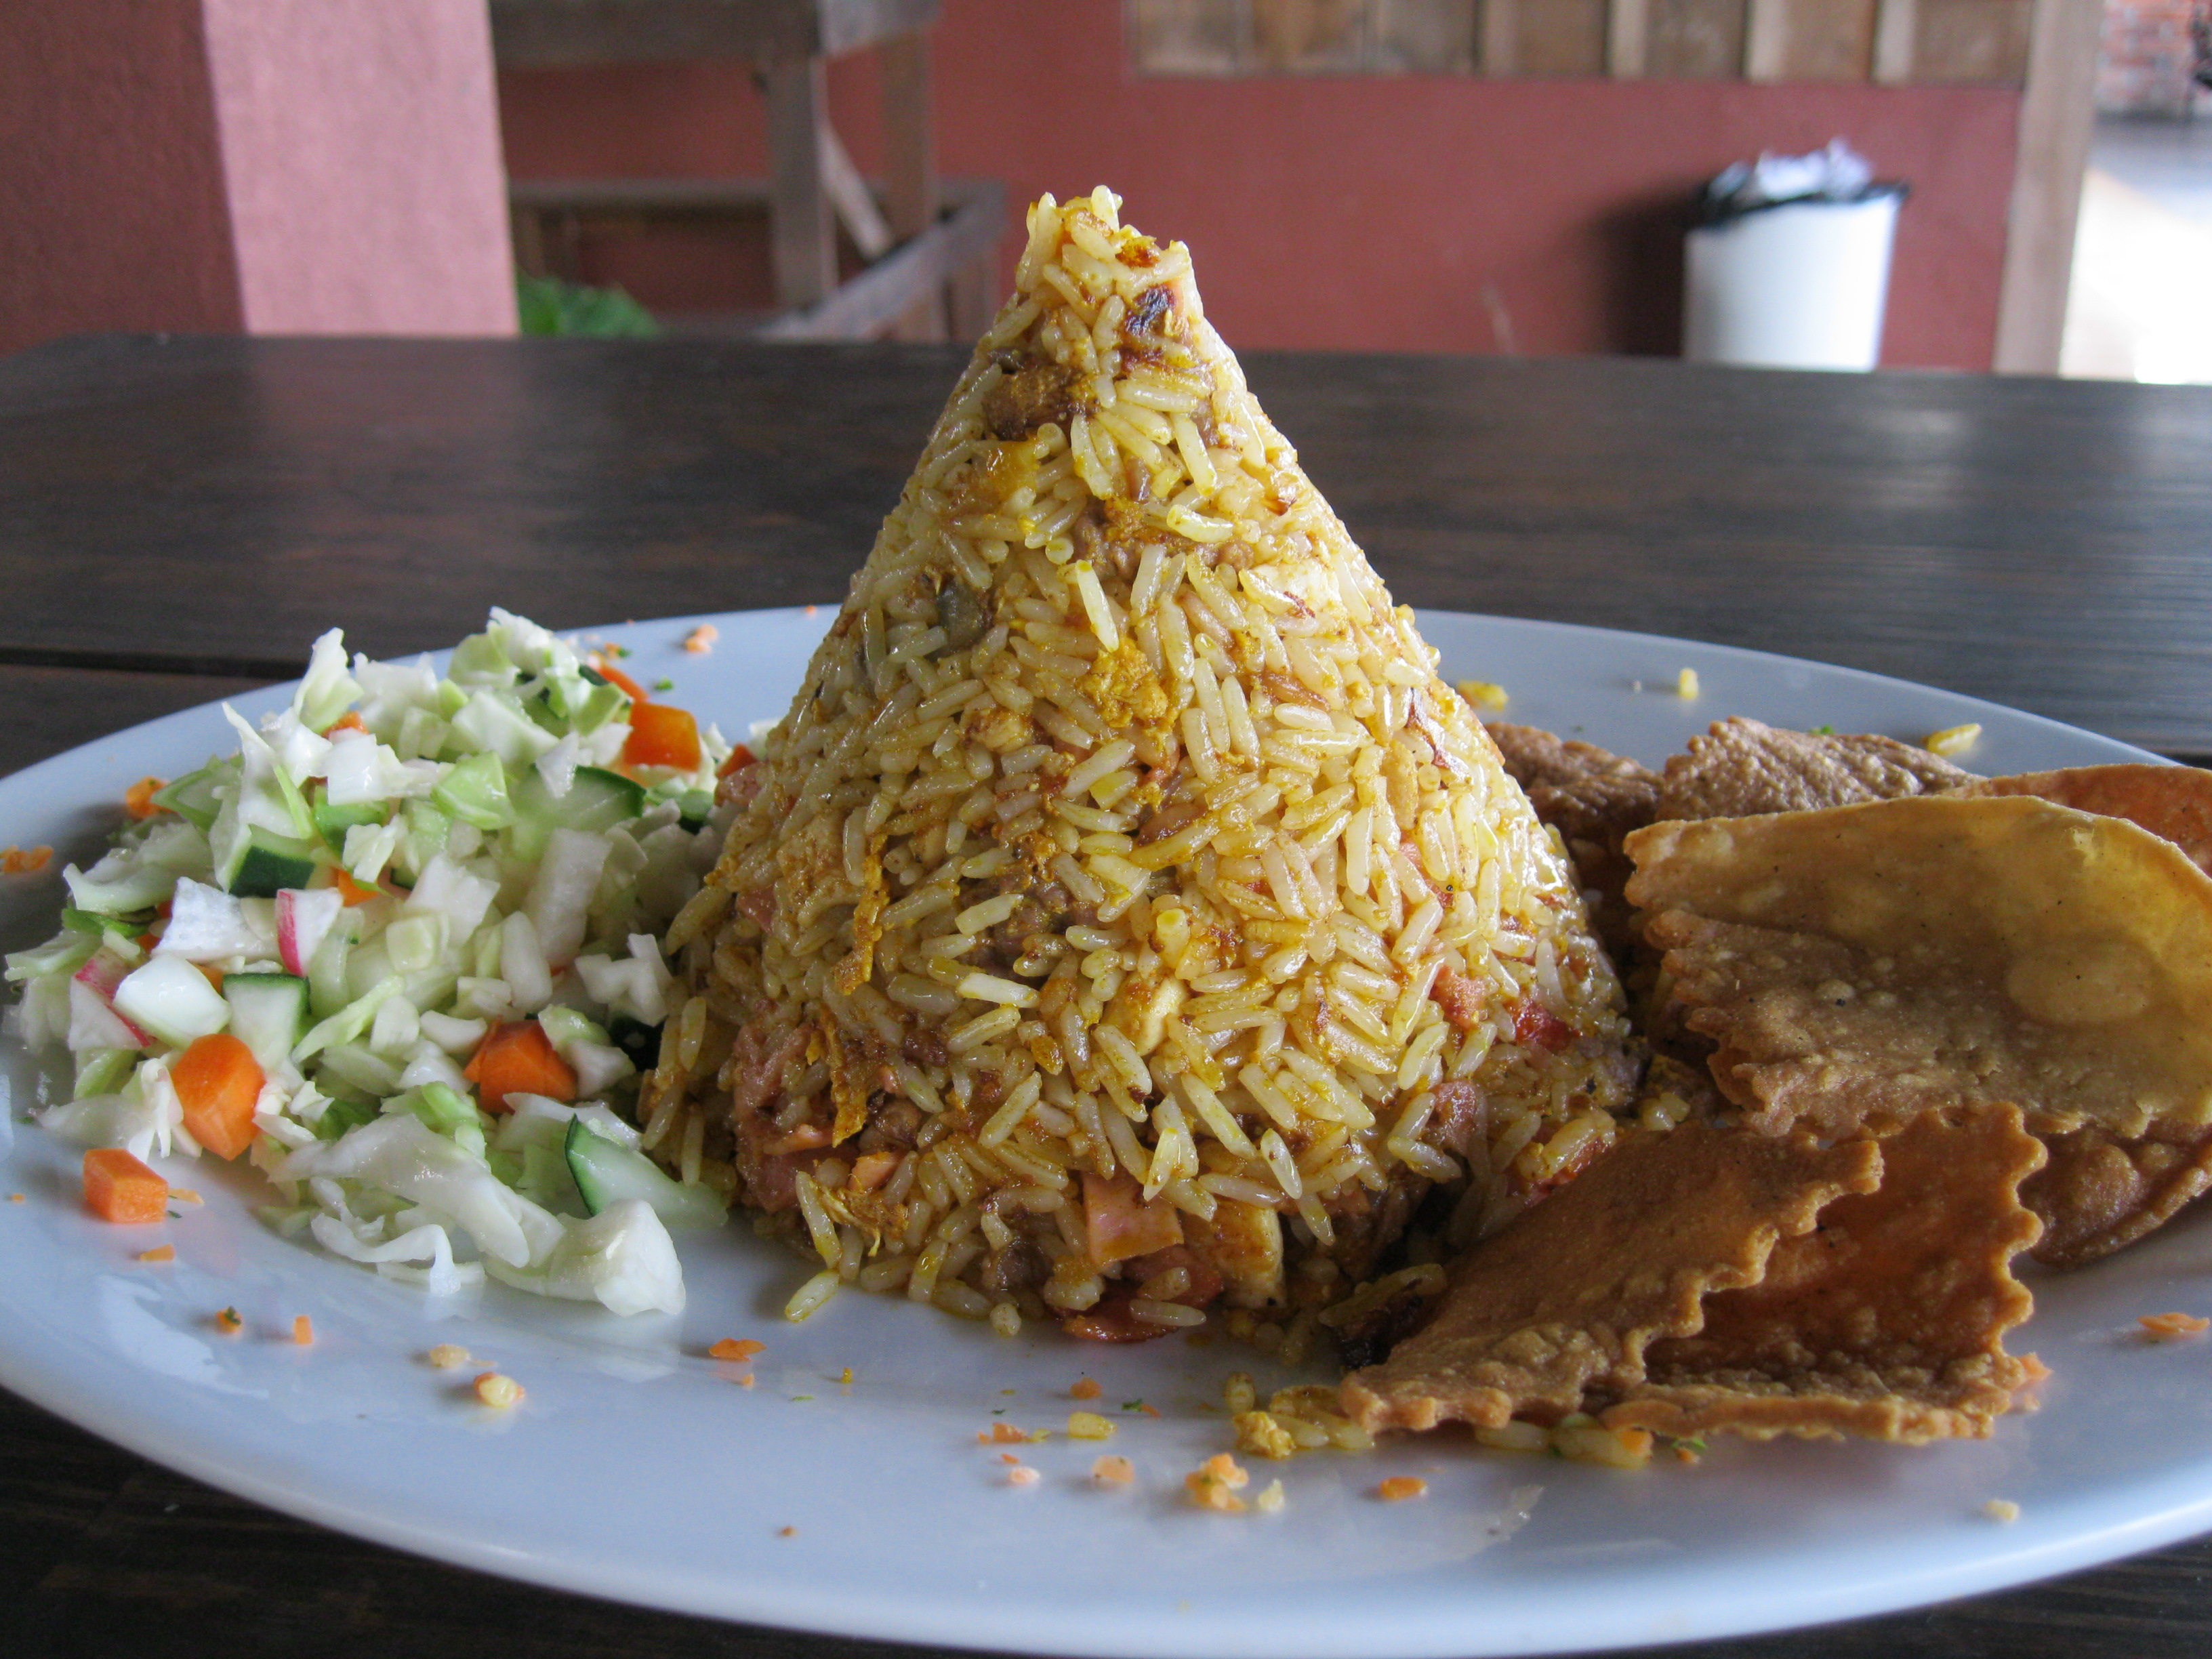 Although American-style food is becoming popular, traditional Costa Rican food remains the meal of choice for most Costa Ricans. This is chicken with rice, with a side of cabbage salad, a staple dish.